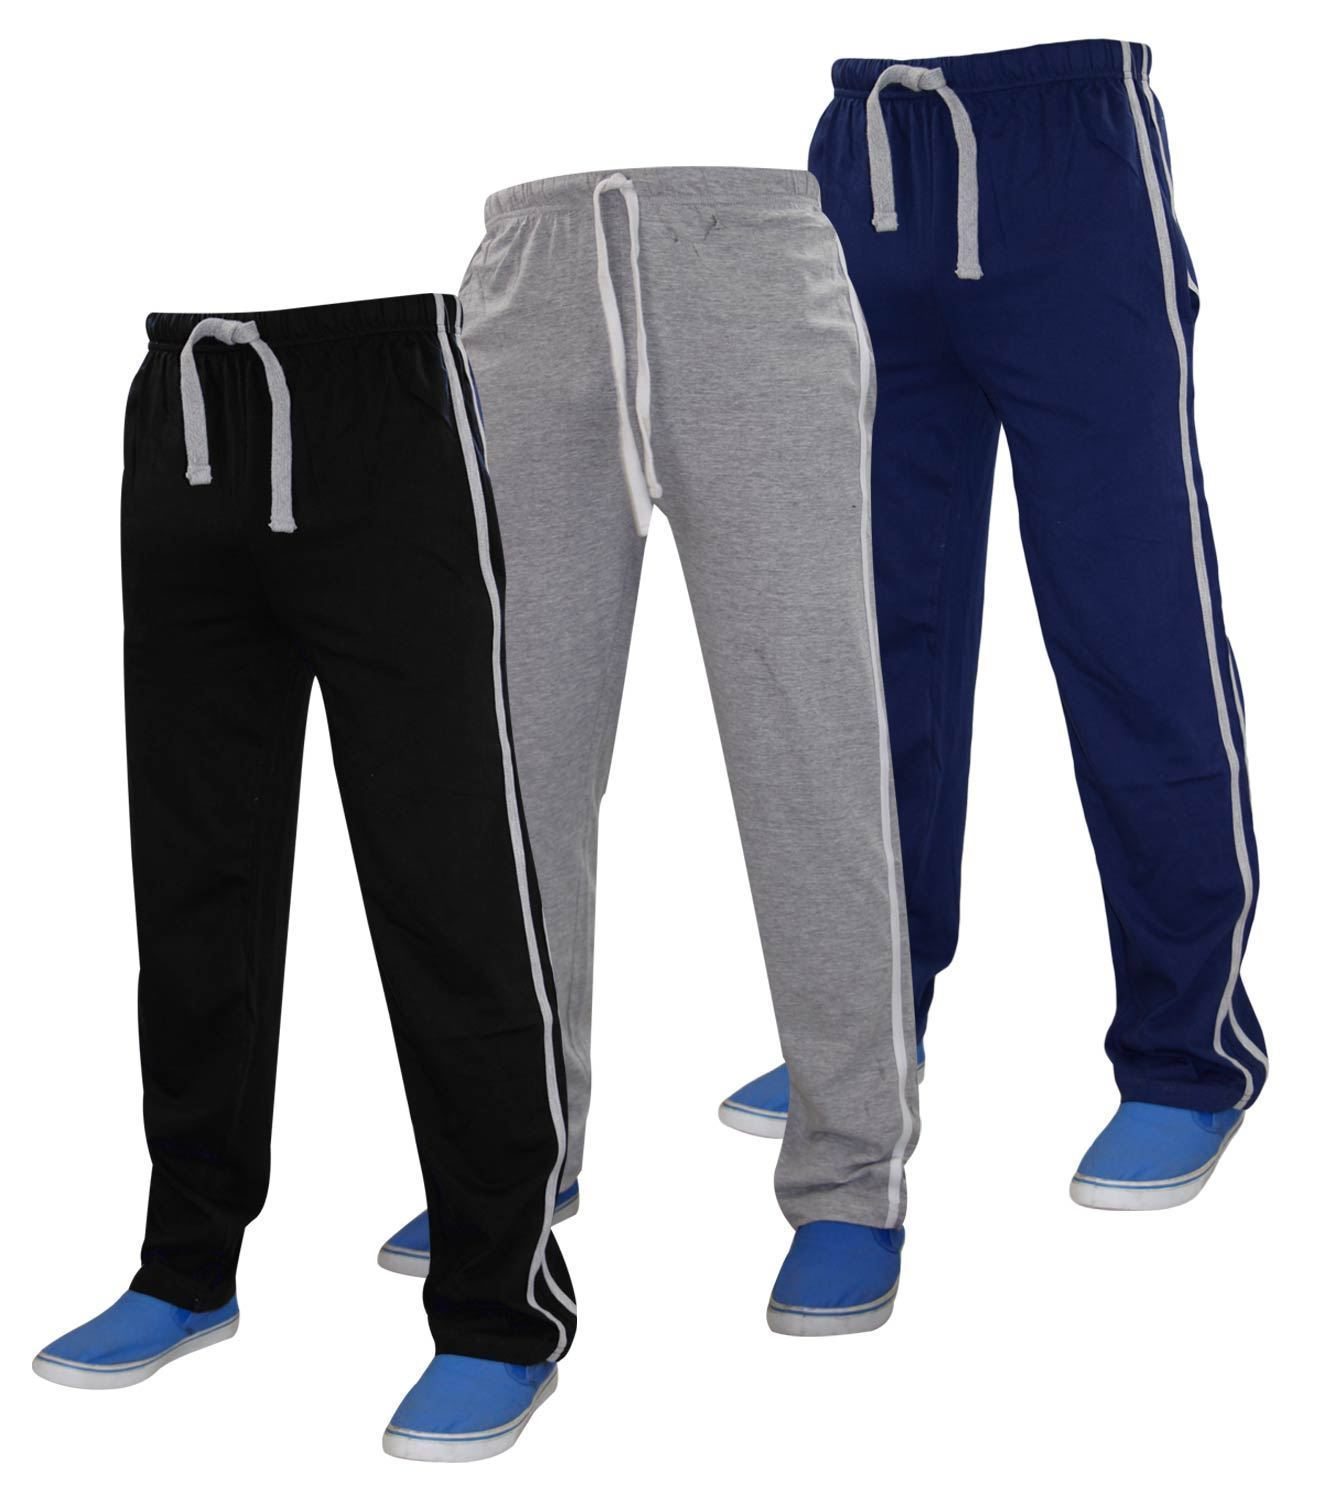 New Mens Authentic Gaffer Lounge Pants Elasticated Bottoms Casual 100% Cotton